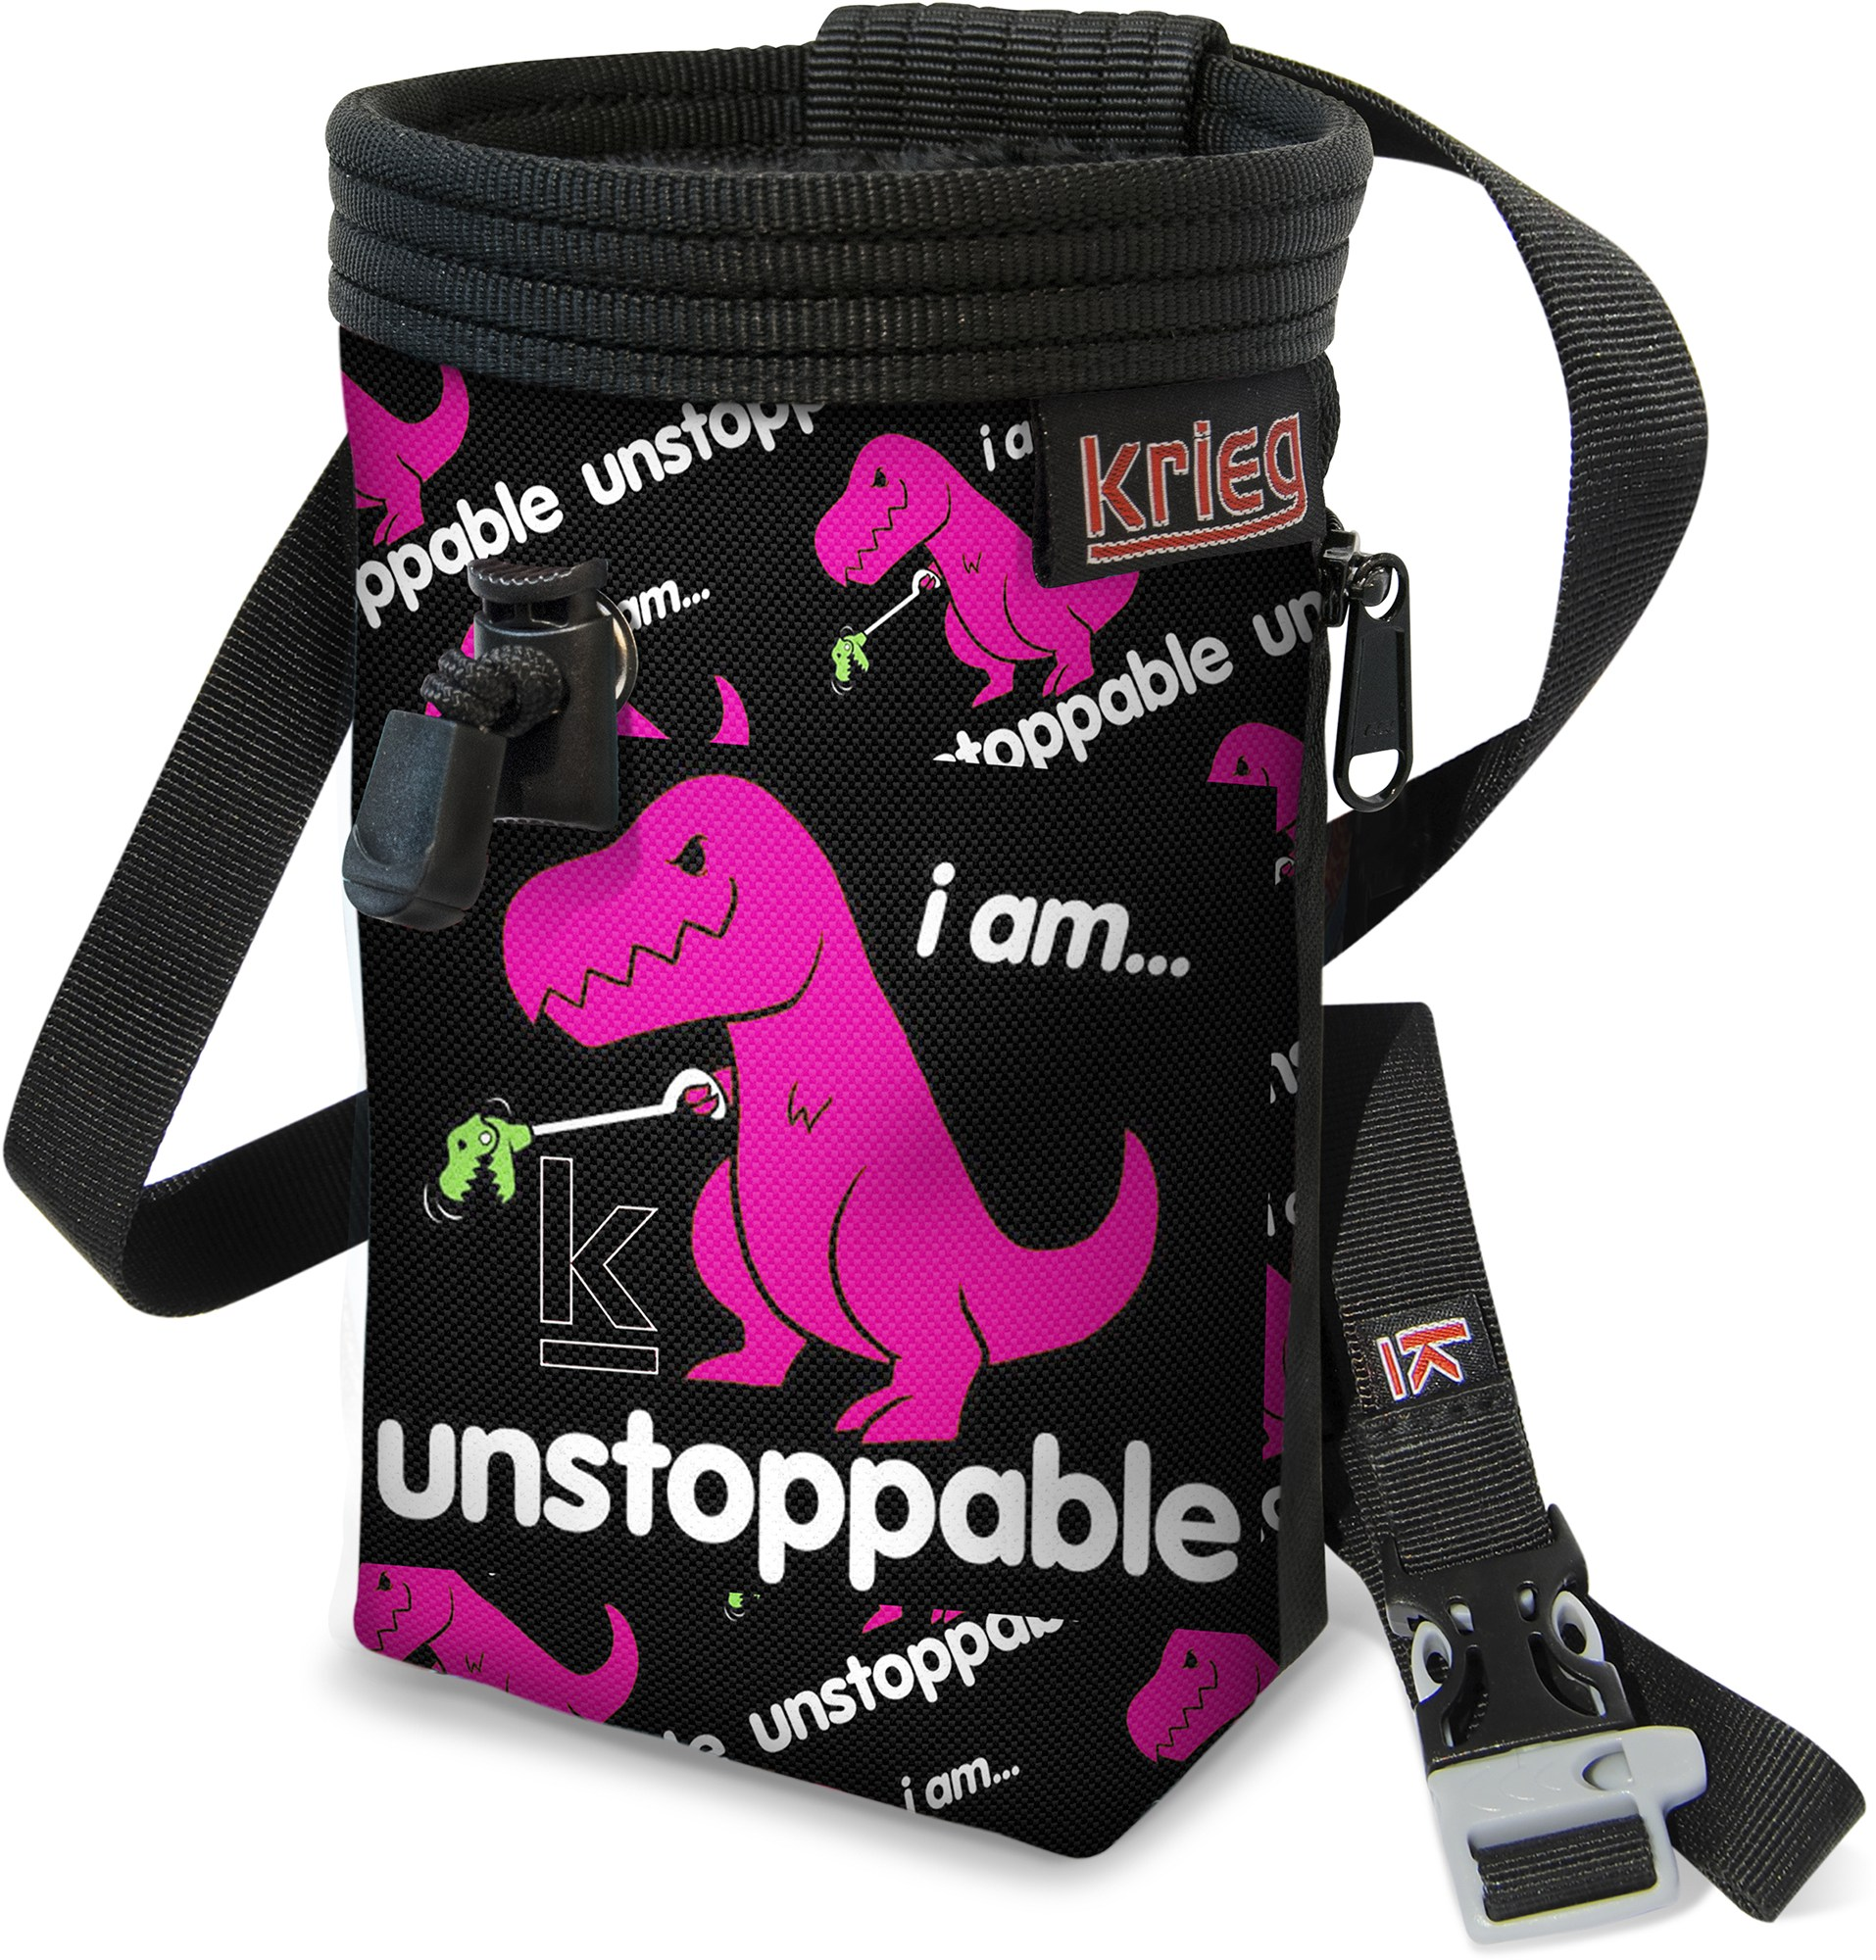 Krieg Special K Chalk Bag - Unstoppable Pink